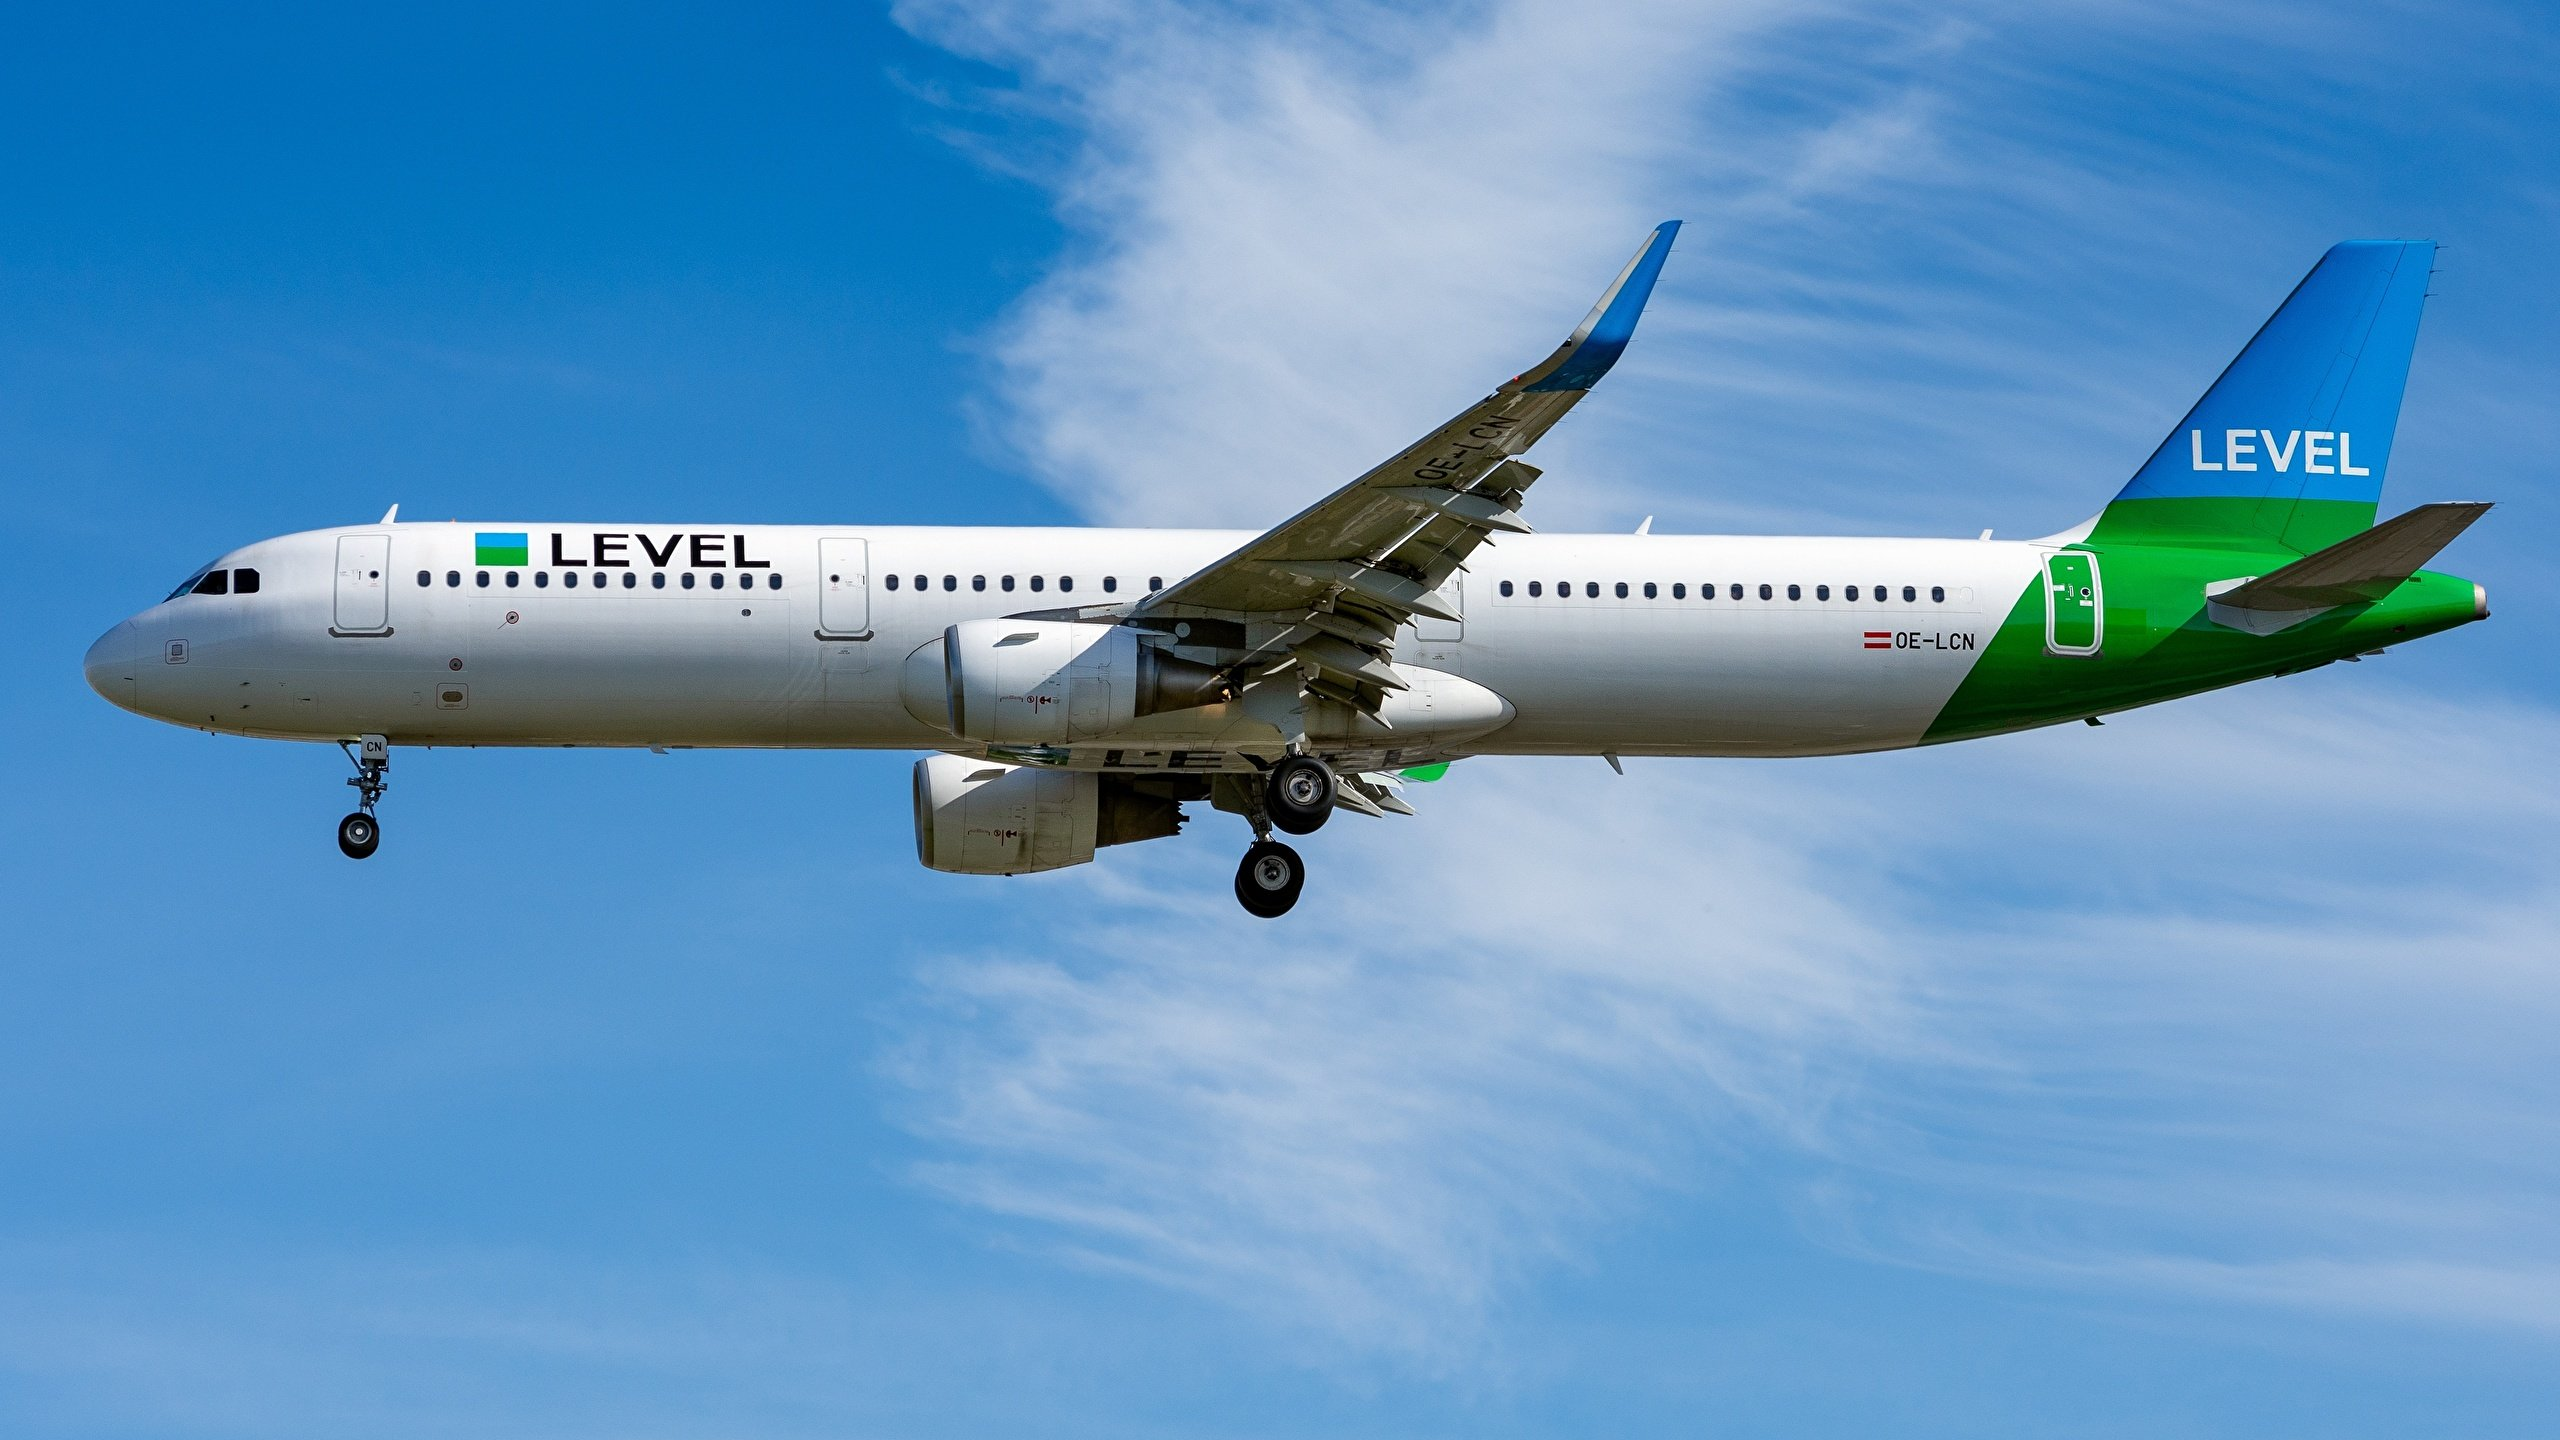 Images Airbus Passenger Airplanes A321 200S OE LCN Level 2560x1440 2560x1440